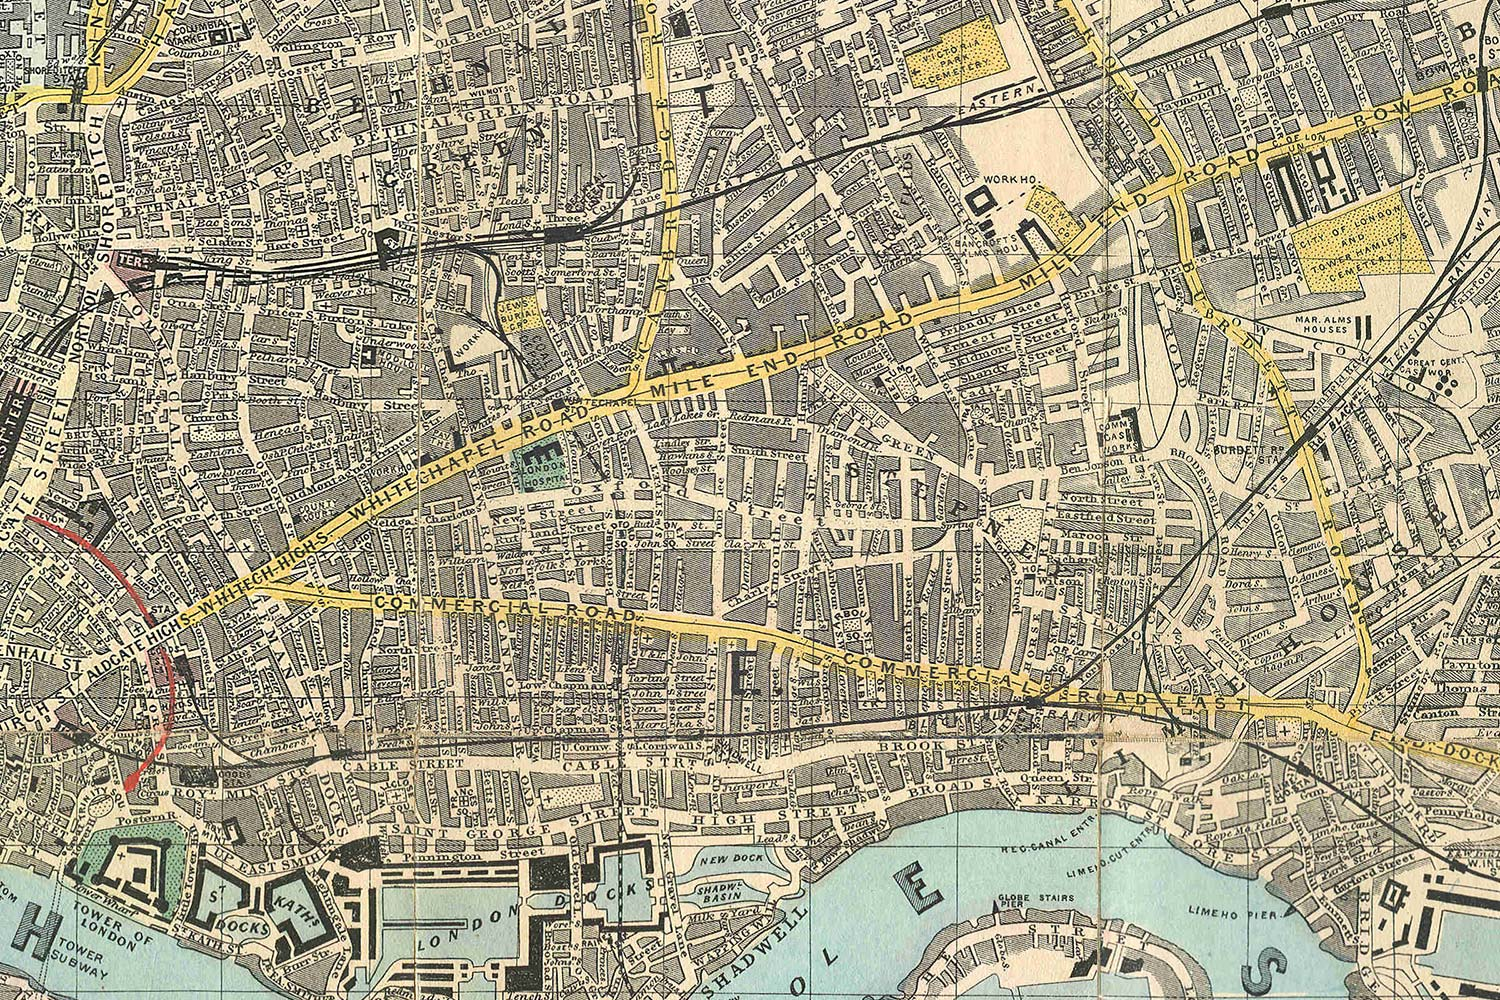 The East End in 1882.